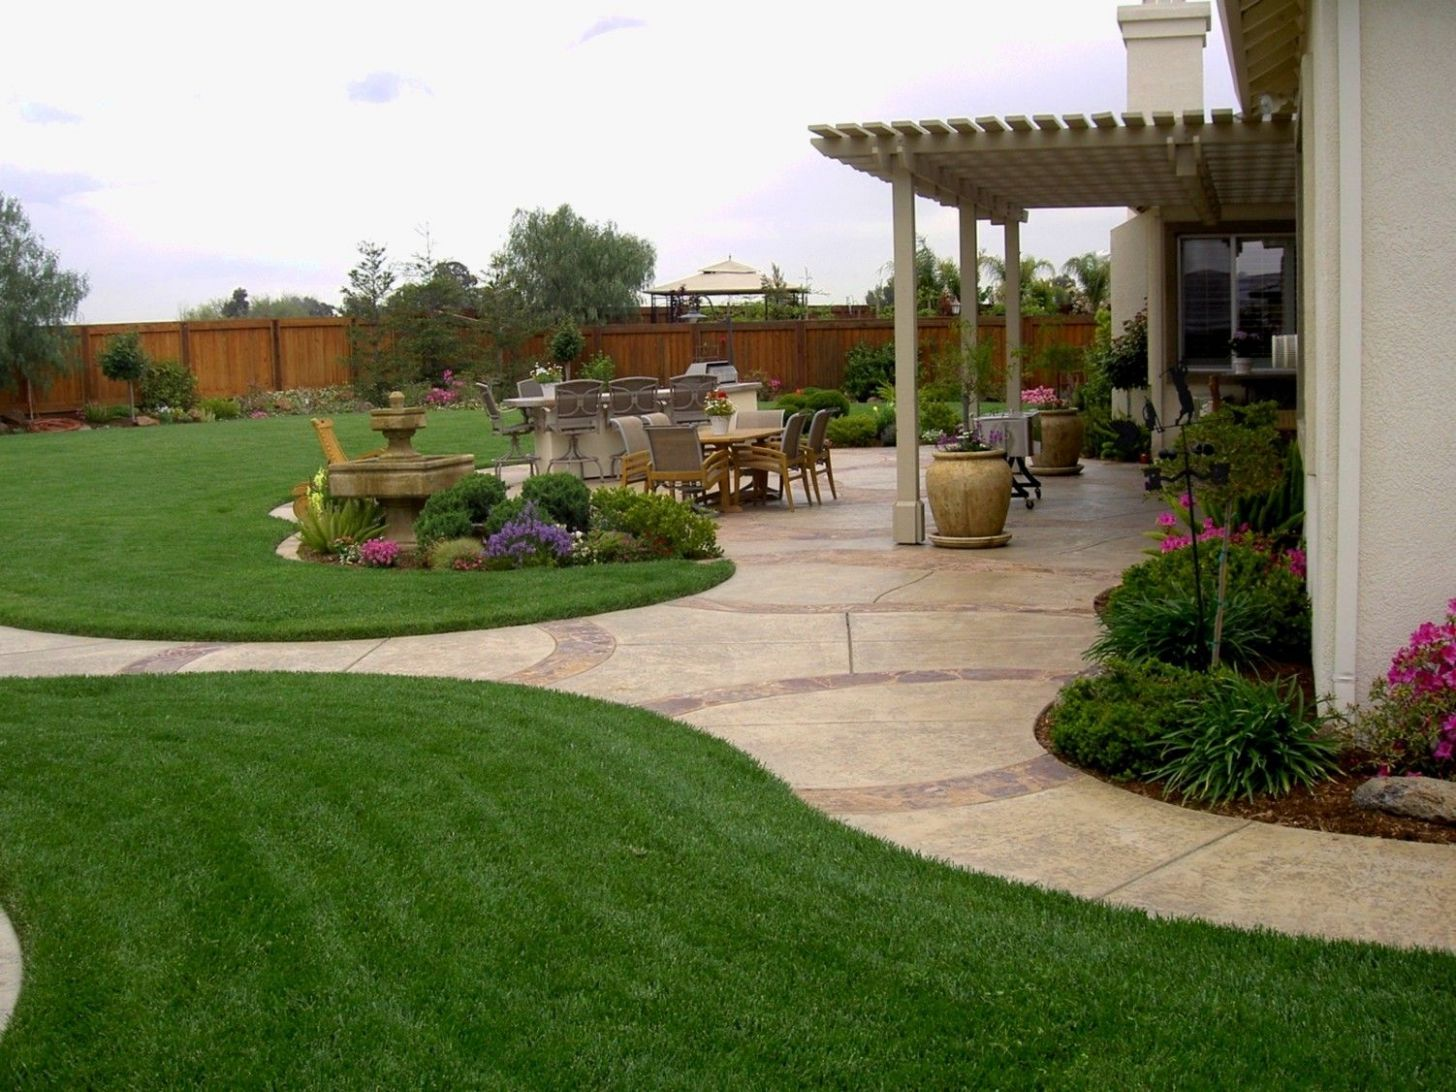 12 Awesome Concepts of How to Improve Backyard Landscape Designs ..